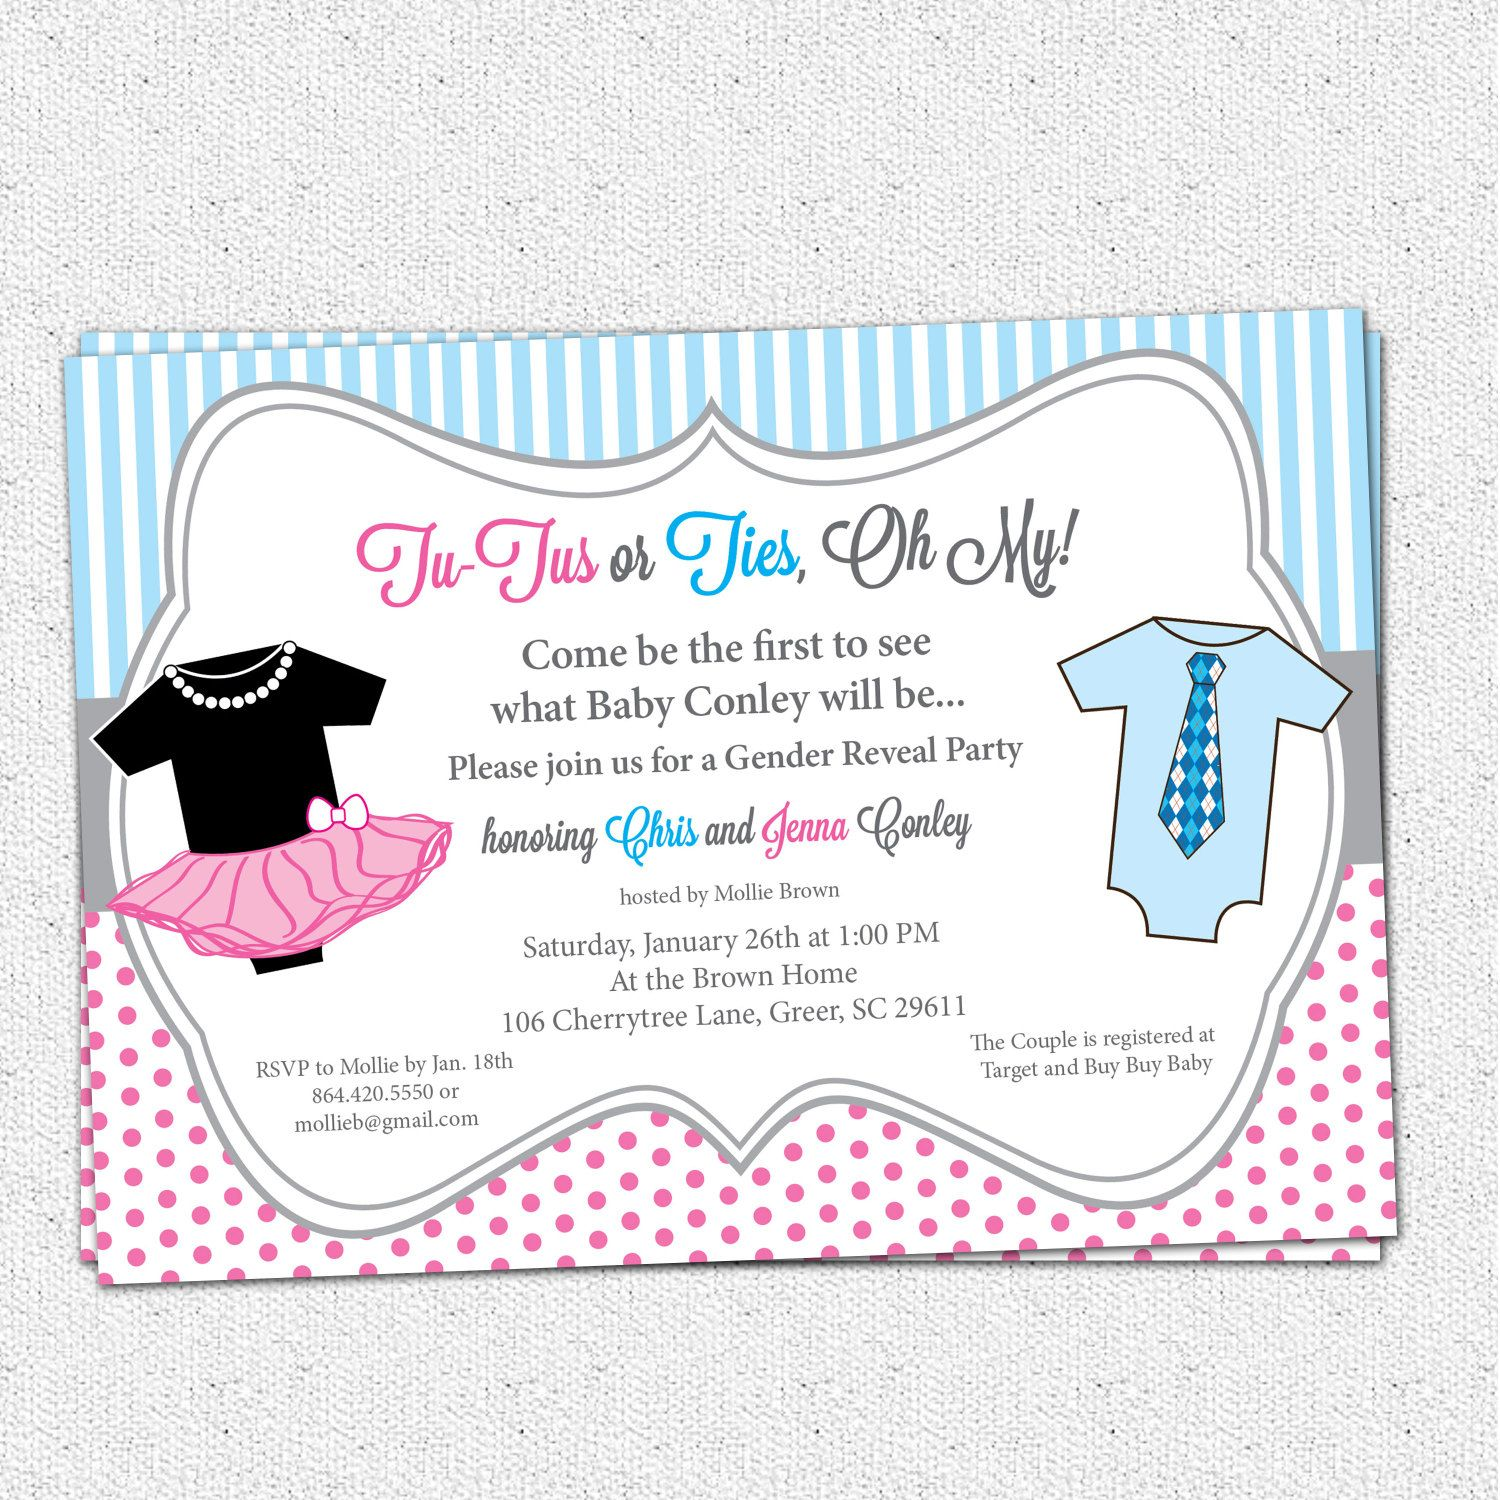 TuTus or Ties Gender Reveal Baby Shower Party Invitation – Invitations for Gender Reveal Party